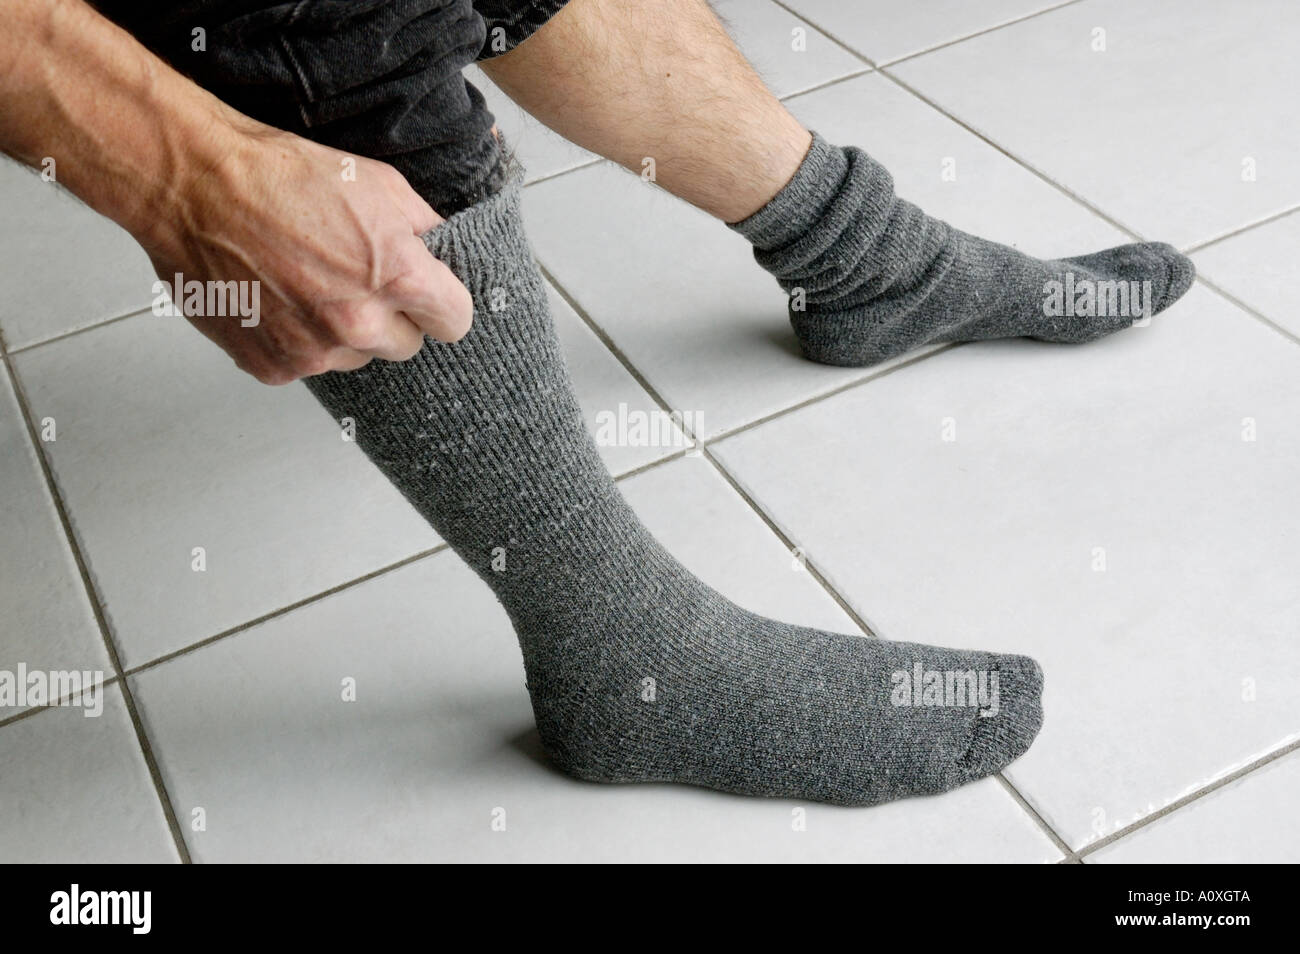 Pulling Up Socks Stock Photos & Pulling Up Socks Stock Images - Alamy